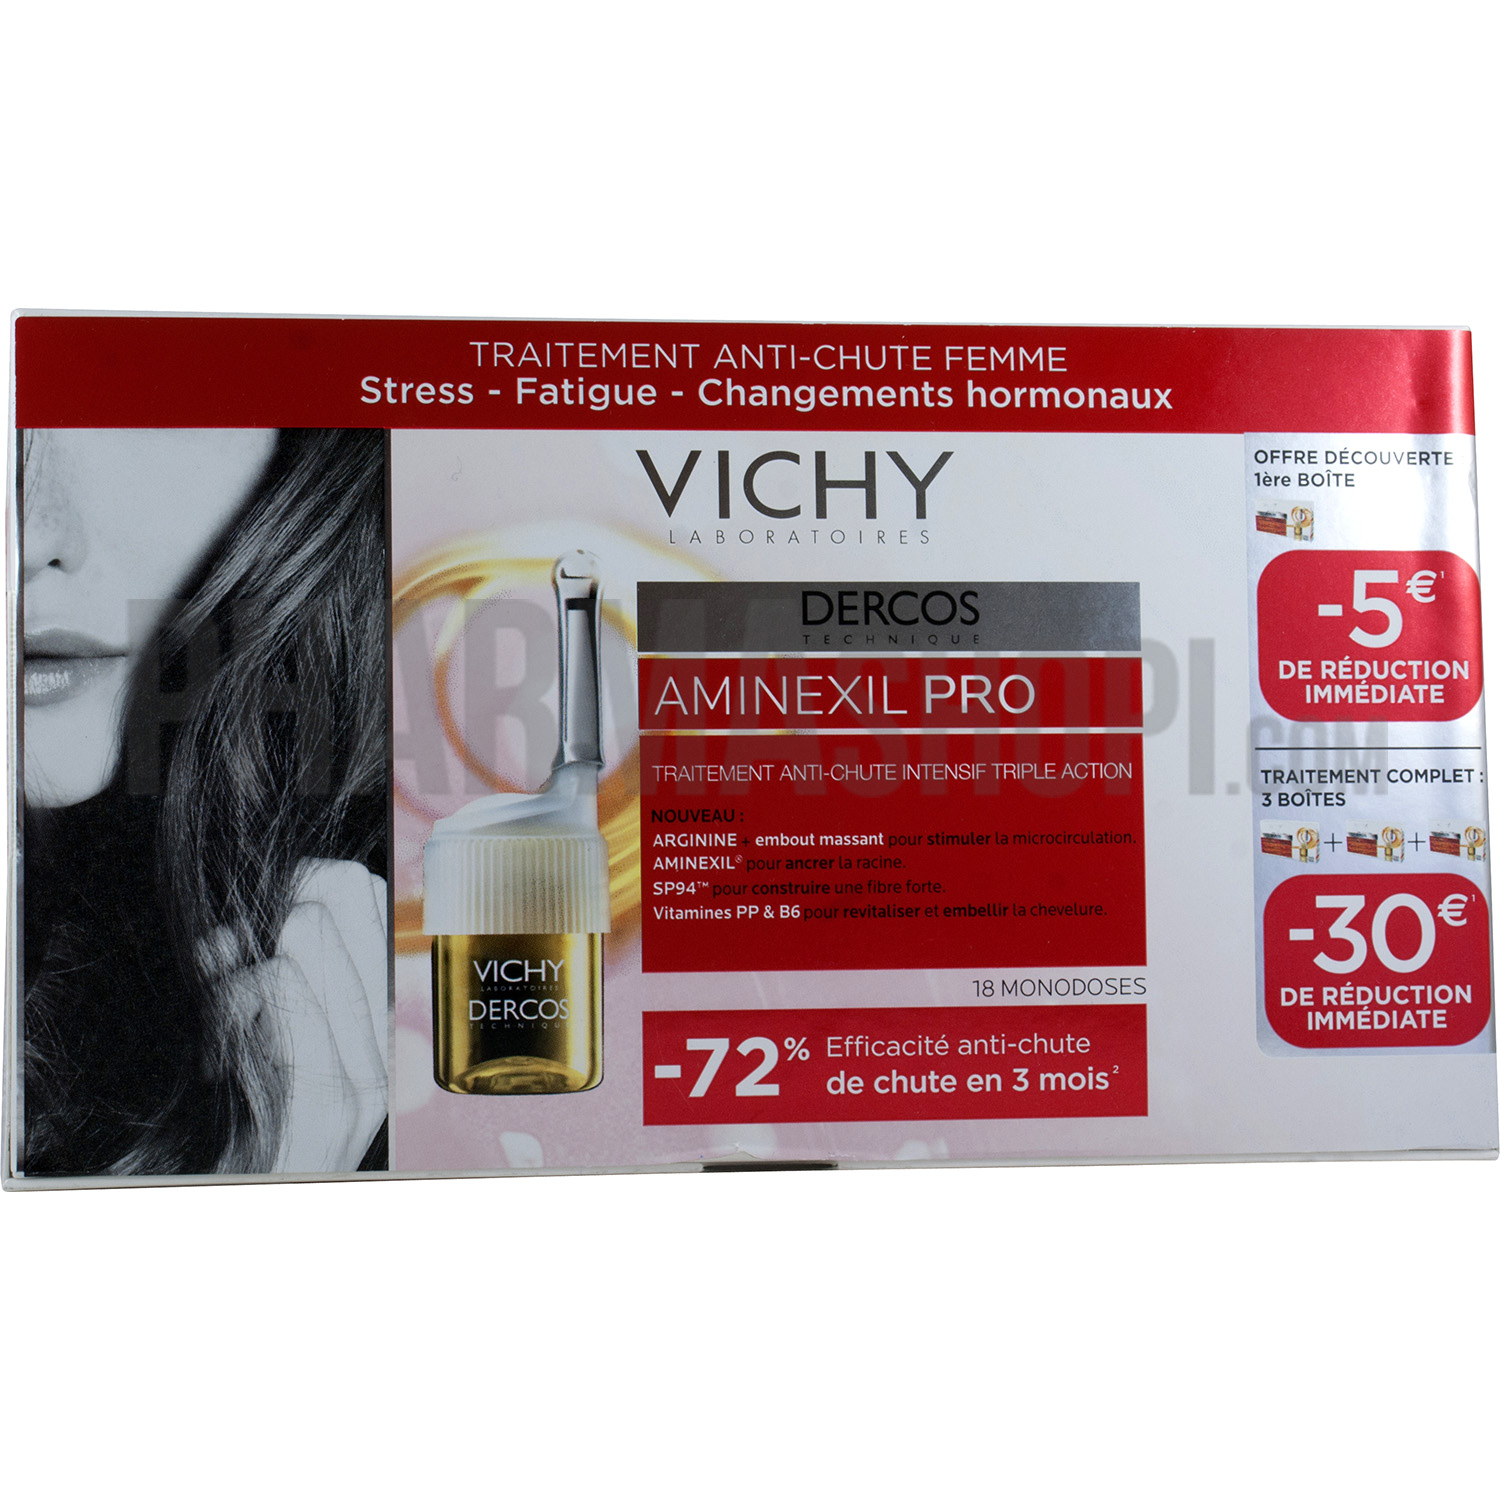 vichy offre dercos aminexil pro femme traitement anti chute vichy bo te de 18 doses. Black Bedroom Furniture Sets. Home Design Ideas